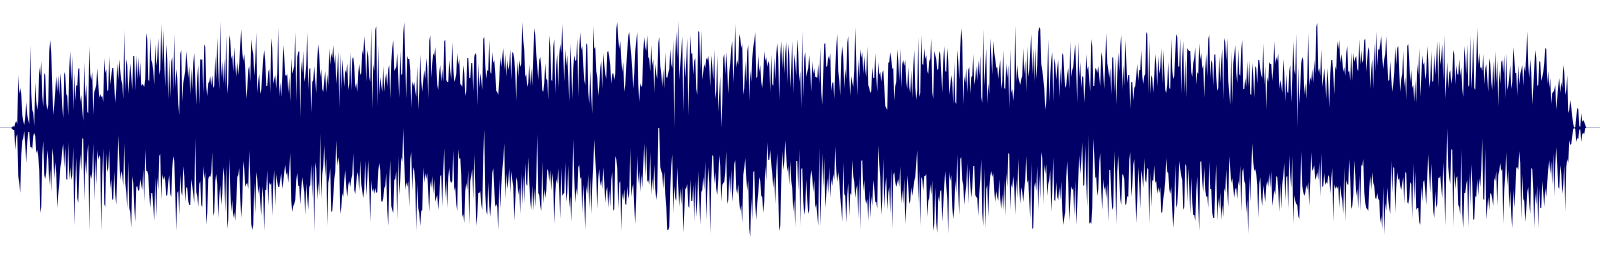 waveform of track #136463